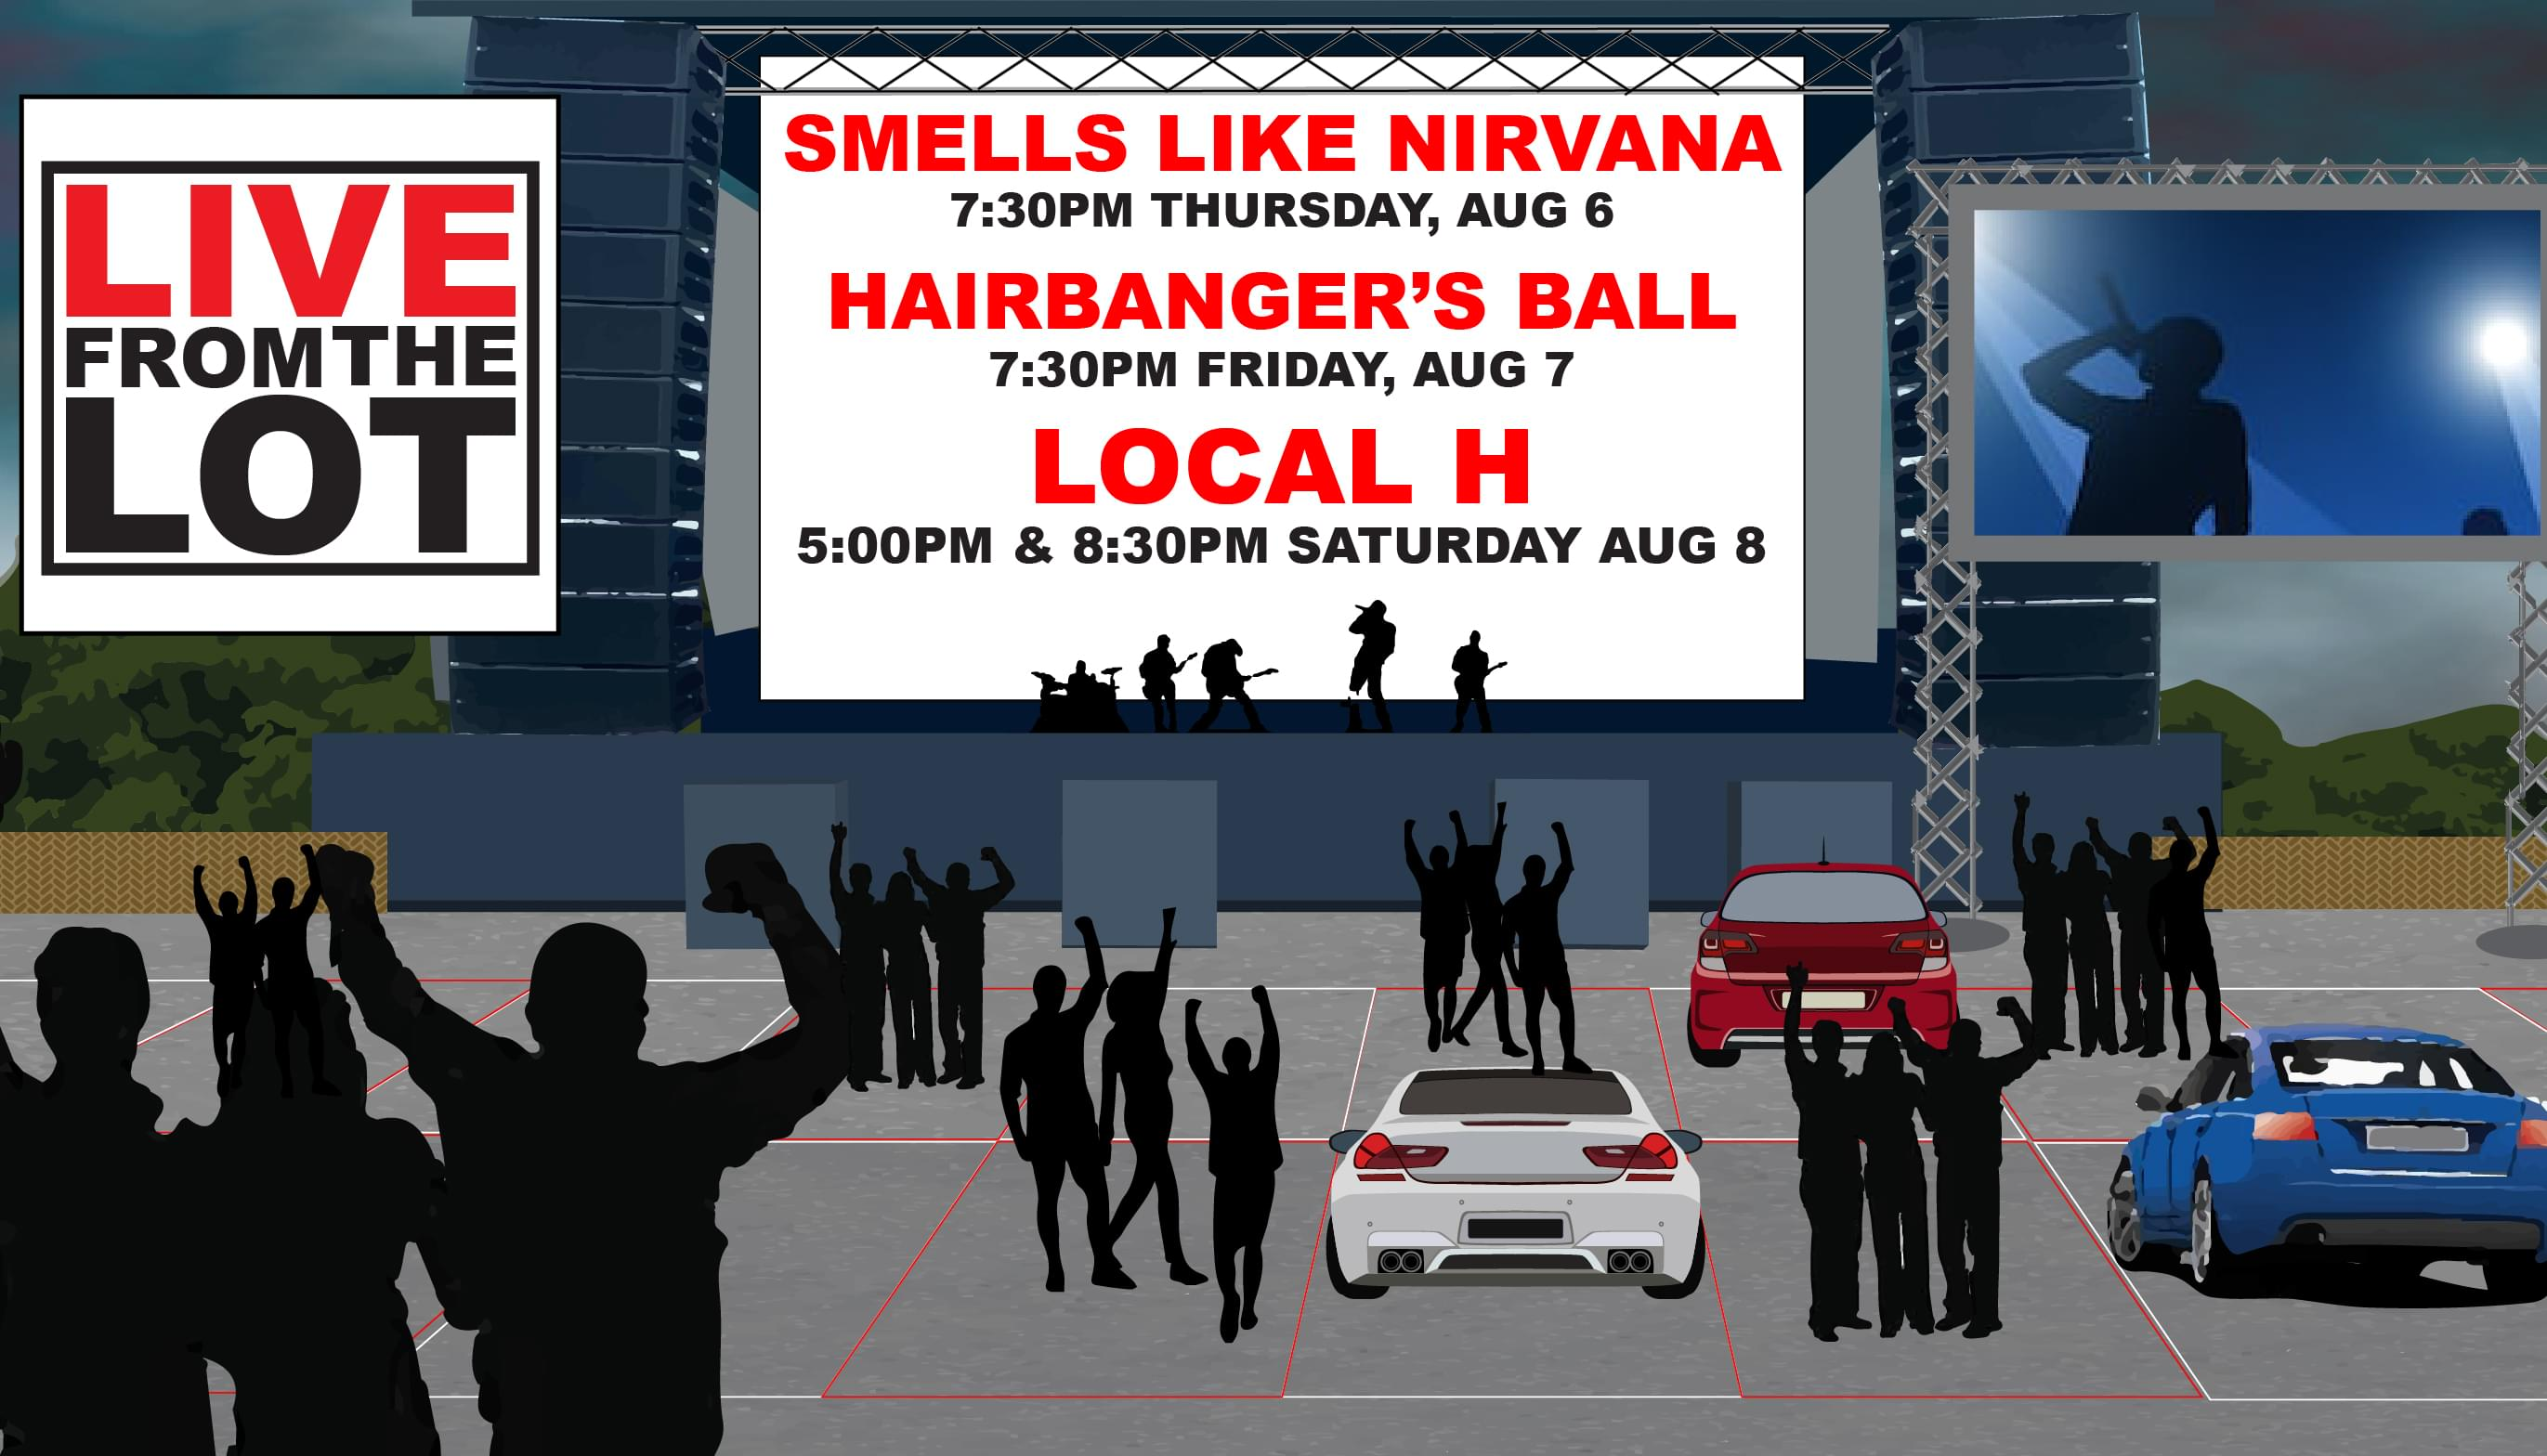 8/7/20 – LIVE FROM THE LOT featuring Hairbanger's Ball